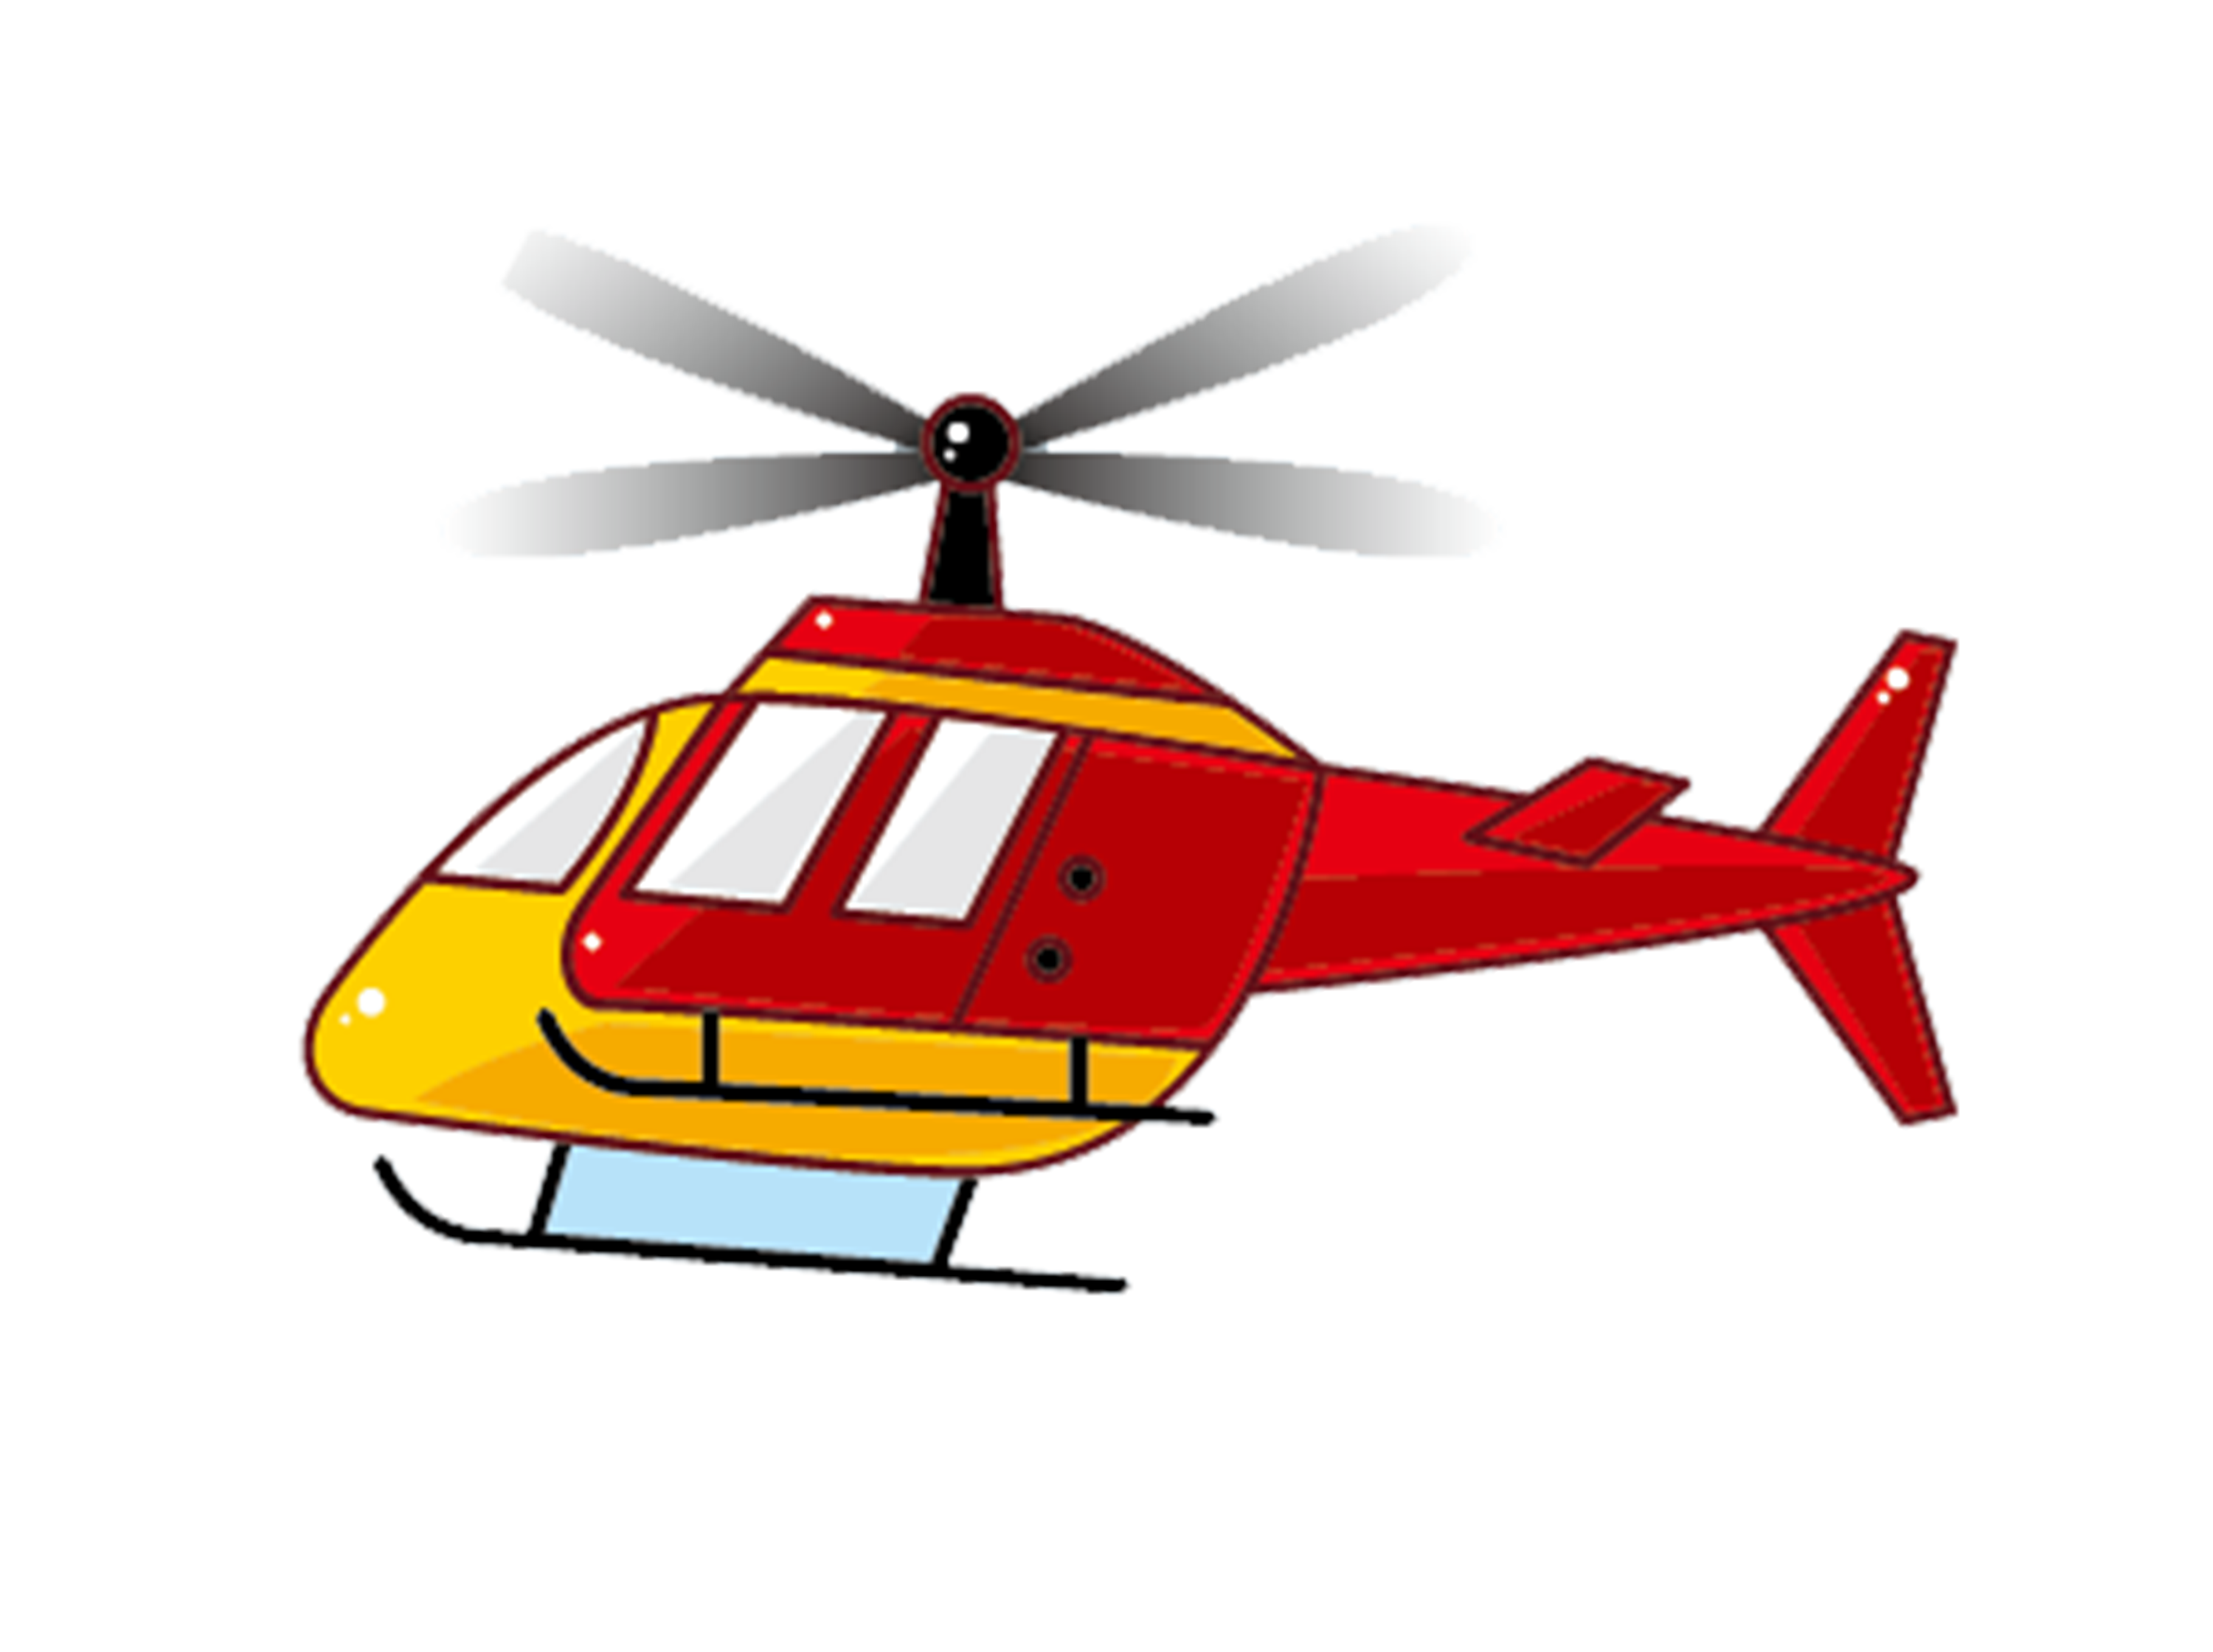 Cartoon helicopter png. Airplane aircraft flight transprent